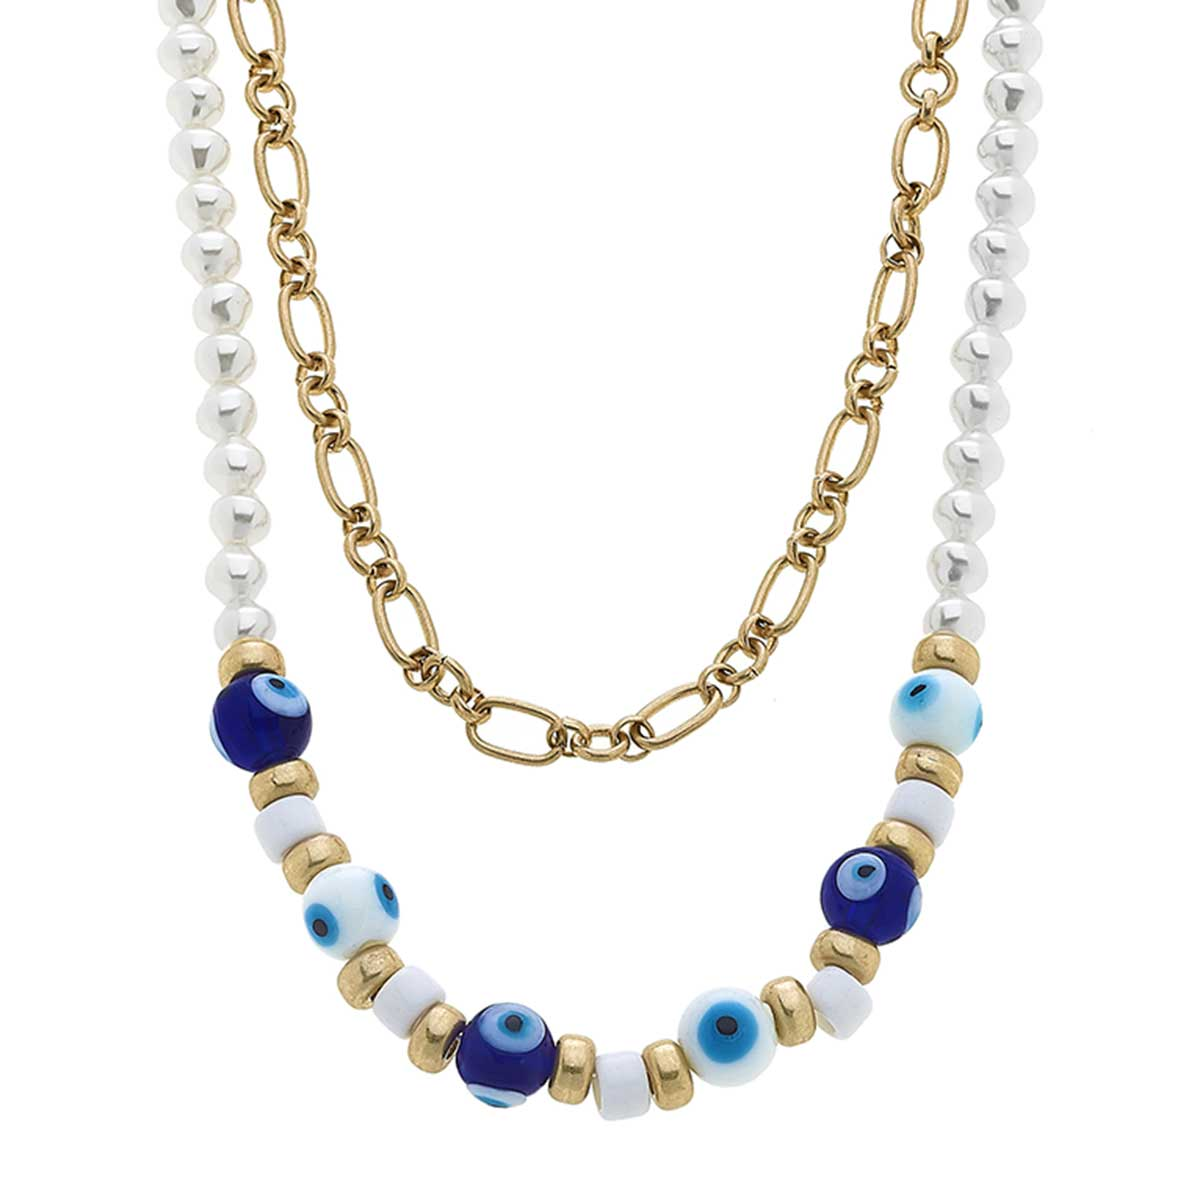 Murano Glass Evil Eye & Pearl Layered Talisman Necklace in Blue, White & Aqua